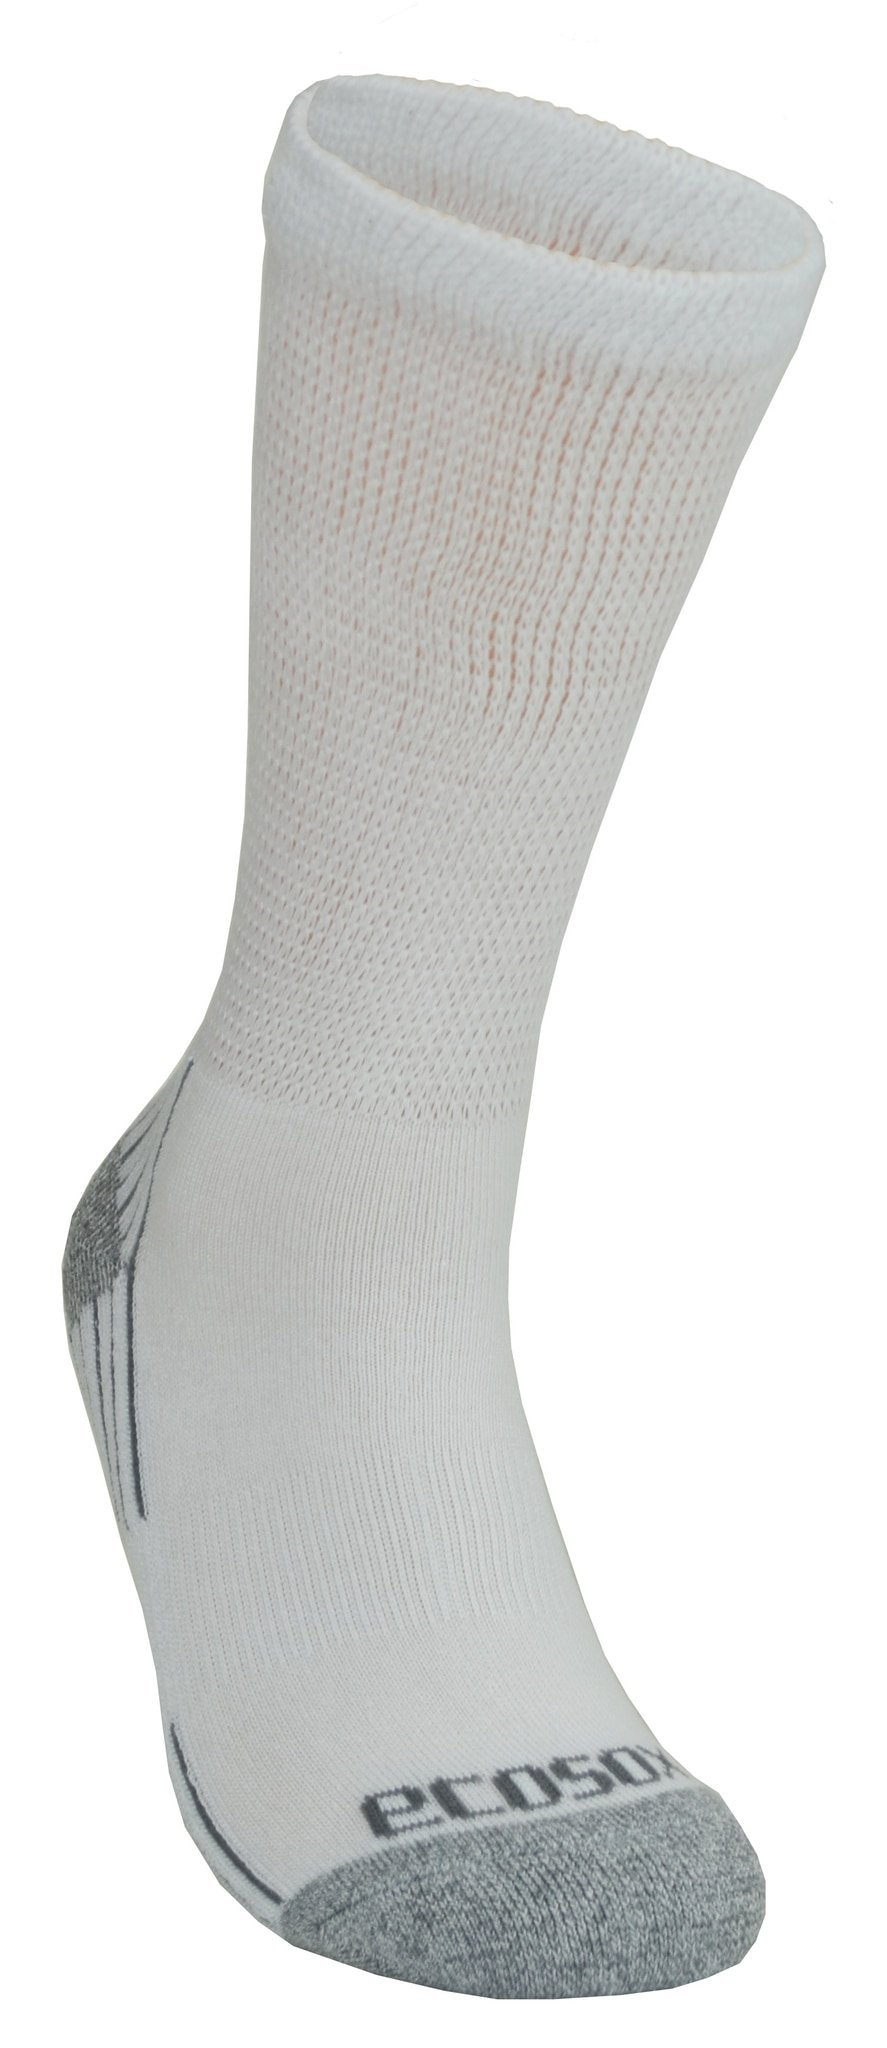 Diabetic Socks - Crew with Arch Support (Pack of 3 OR 6) Viscose from Bamboo by Ecosox Sizes Med 9-11, Large10-13, XL12-15 (White Grey 9-11, 6 Pack)